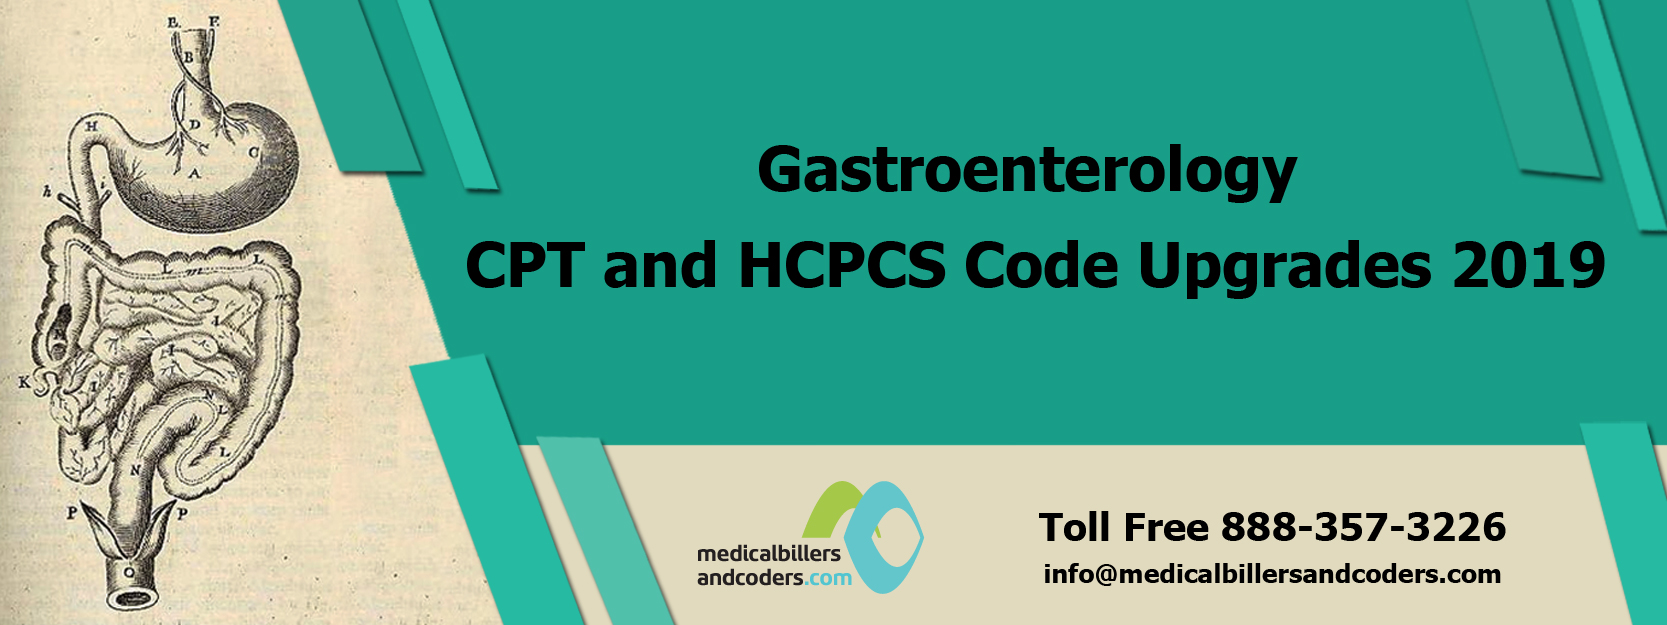 Gastroenterology CPT and HCPCS Code Upgrades 2019